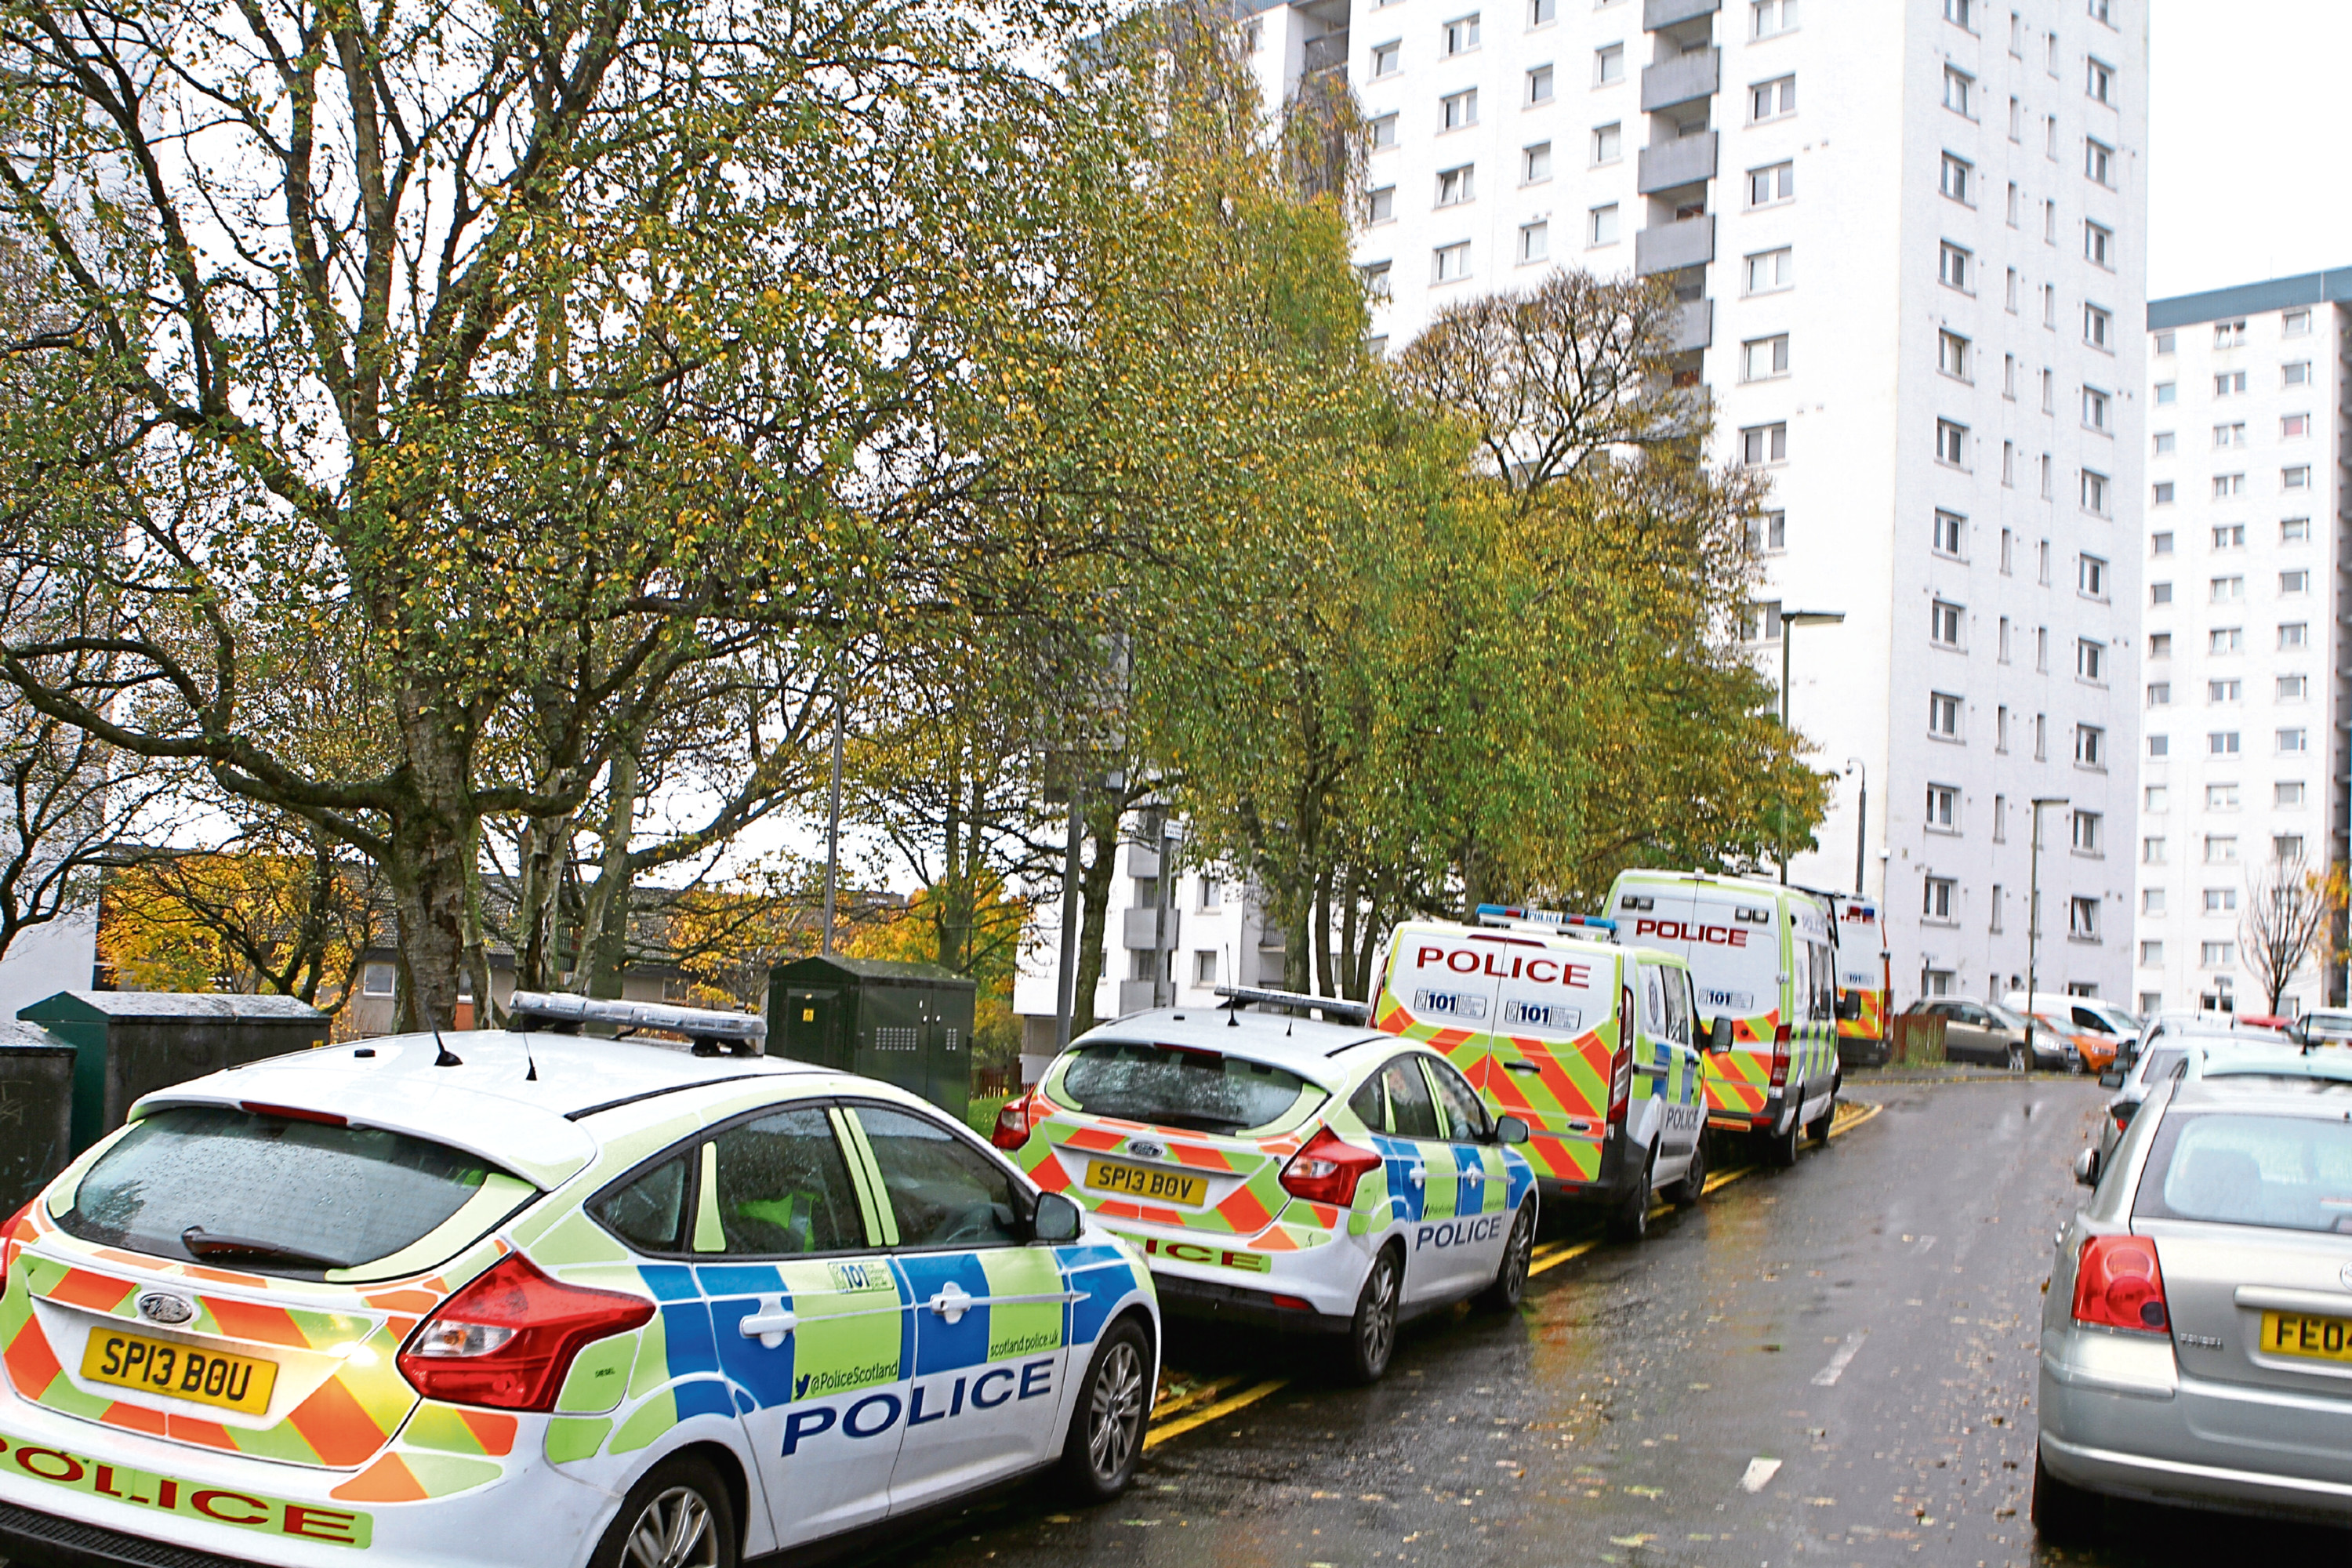 Police vehicles outside Hilltown Court as day two of Operational Fundamental is carried out